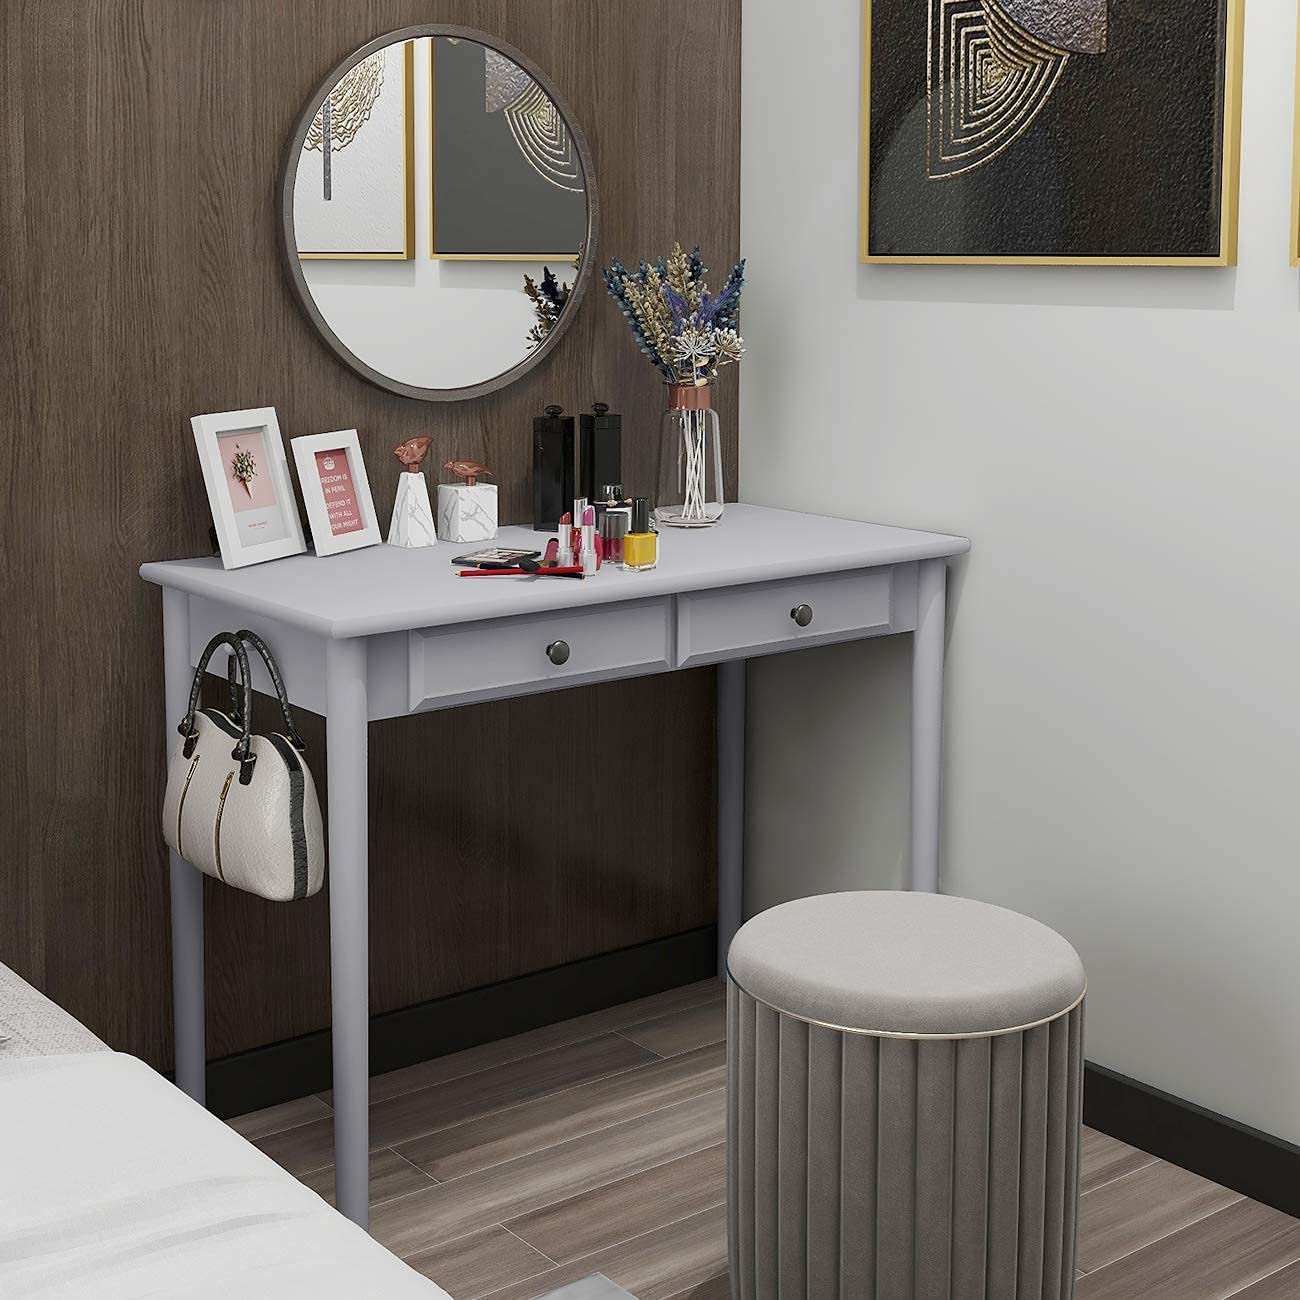 39in Small Grey Wooden Writing Computer Desk for Home Office Study Bedroom, Dressing Vanity Table with 2 Drawers, Laptop Workstation Executive Desk